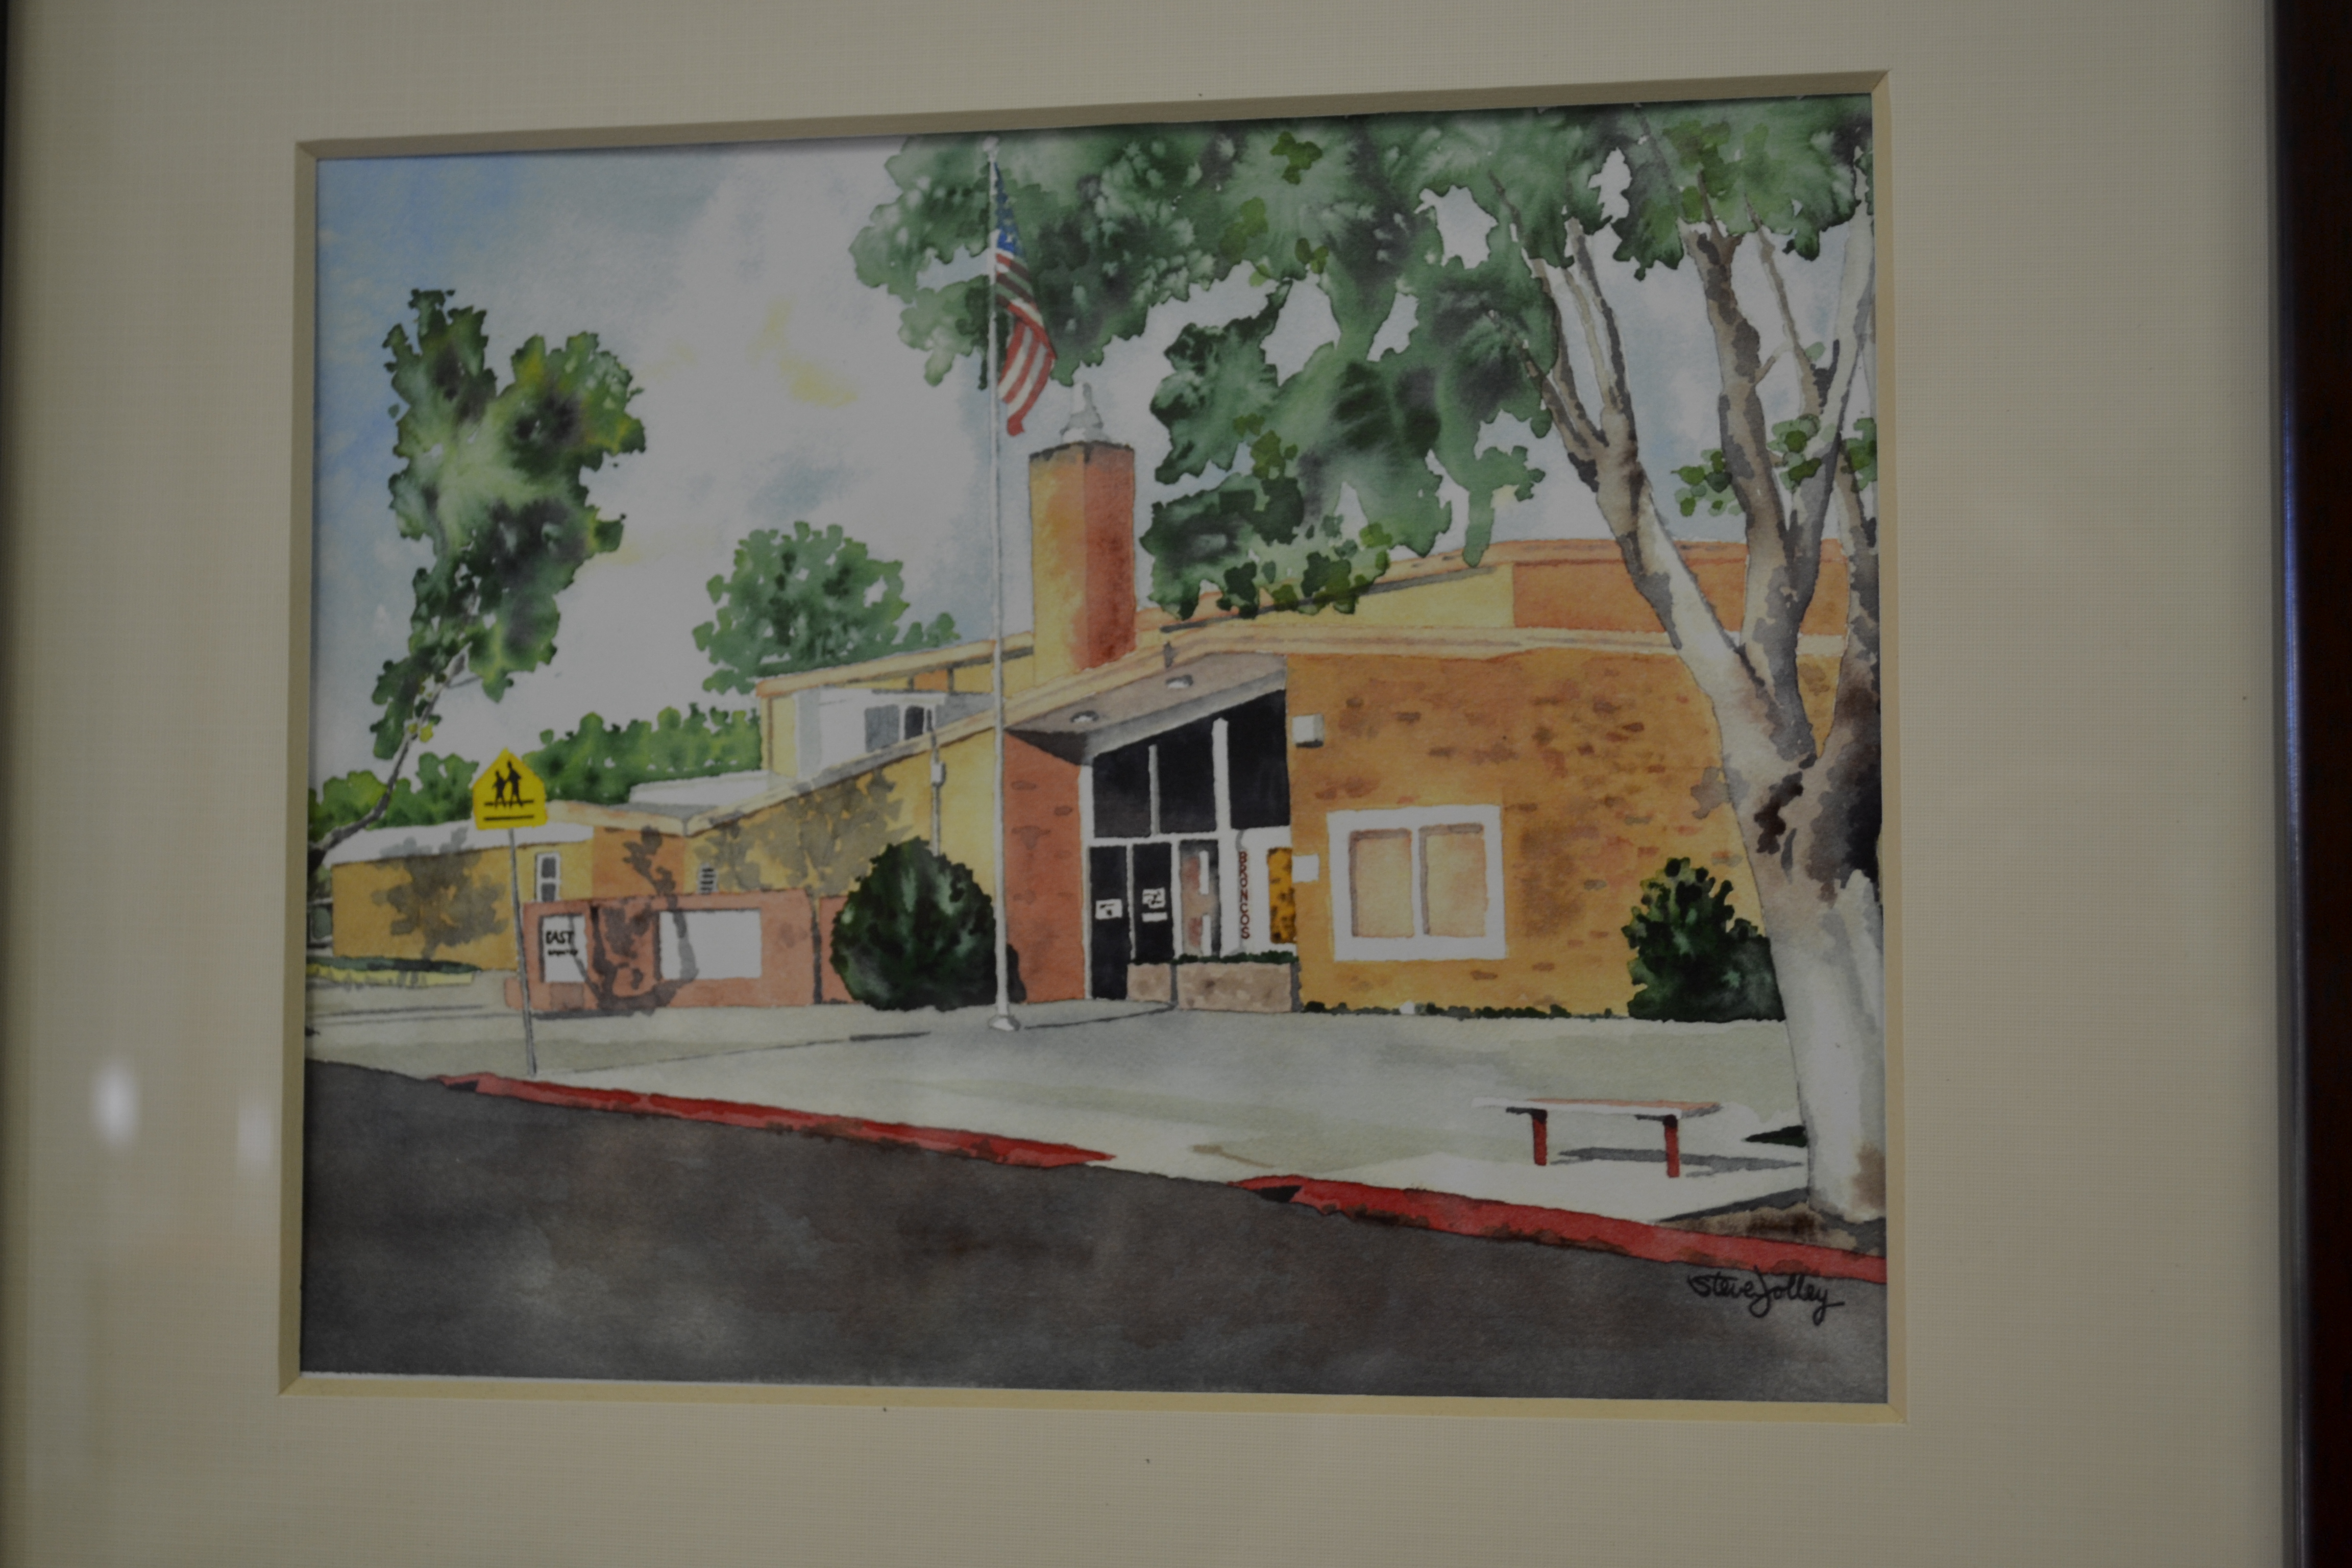 A watercolor of East Elementary School, St. George, Utah, Nov. 7, 2016   Photo by Joseph Witham, St. George News